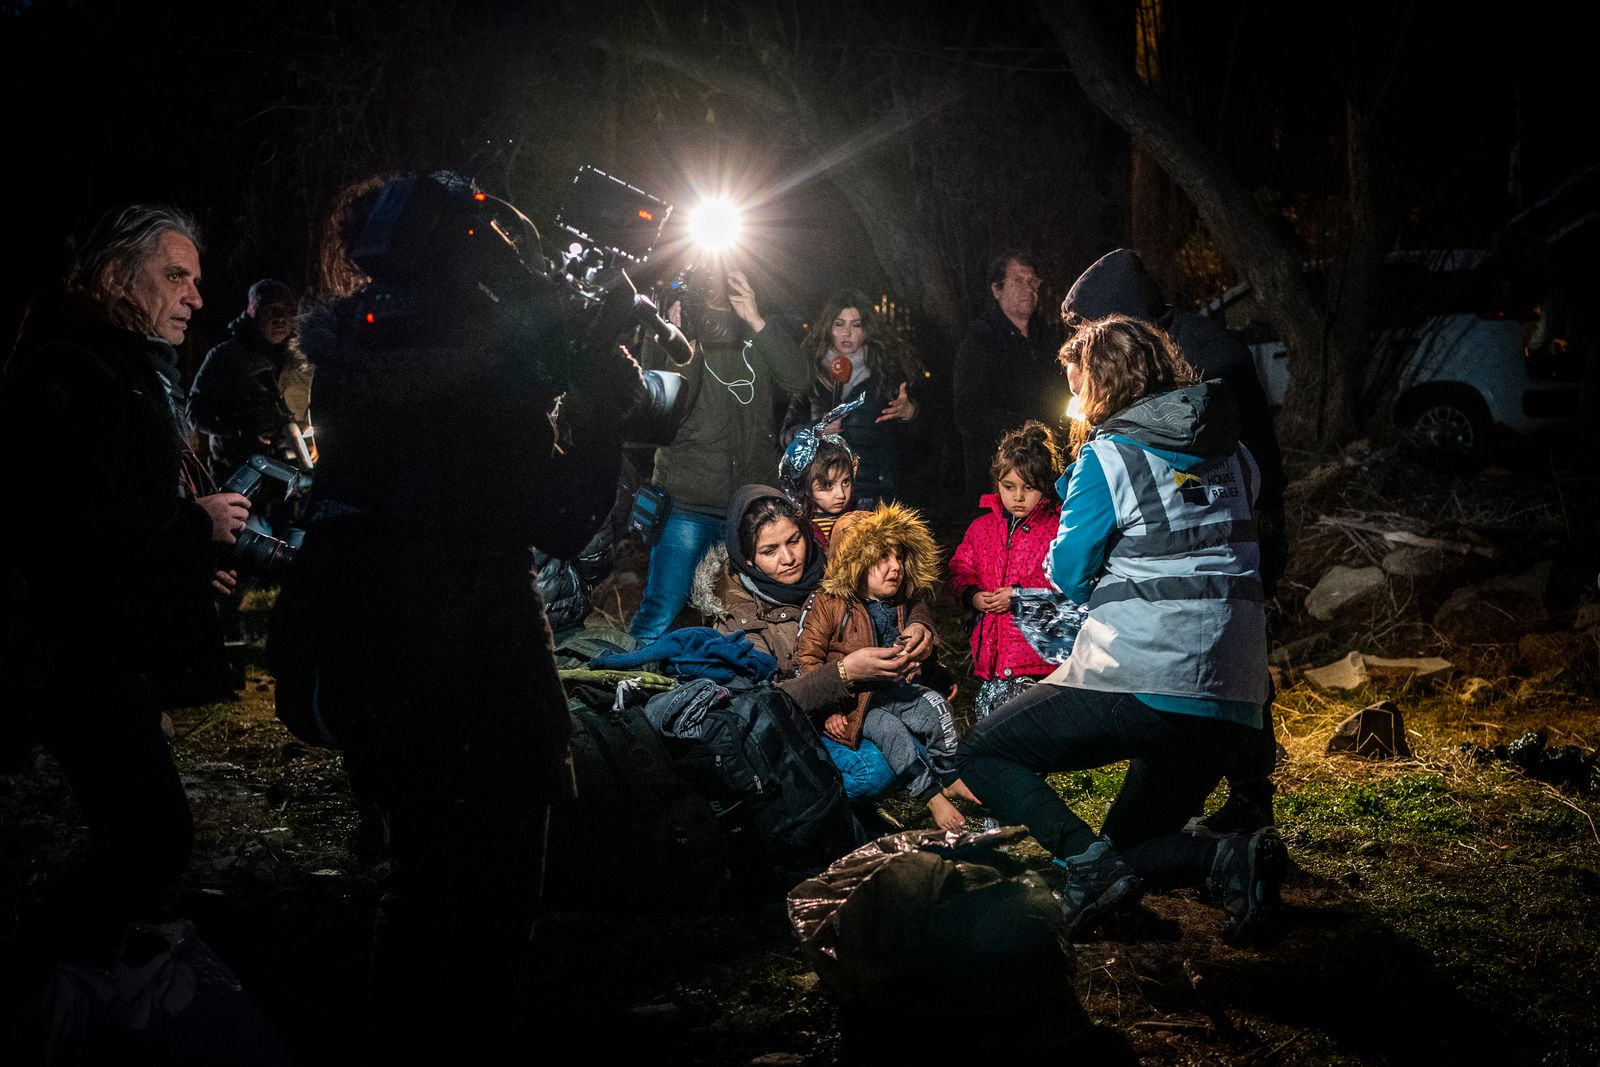 Greece, Lesbos, Refugees arrive at the European shore